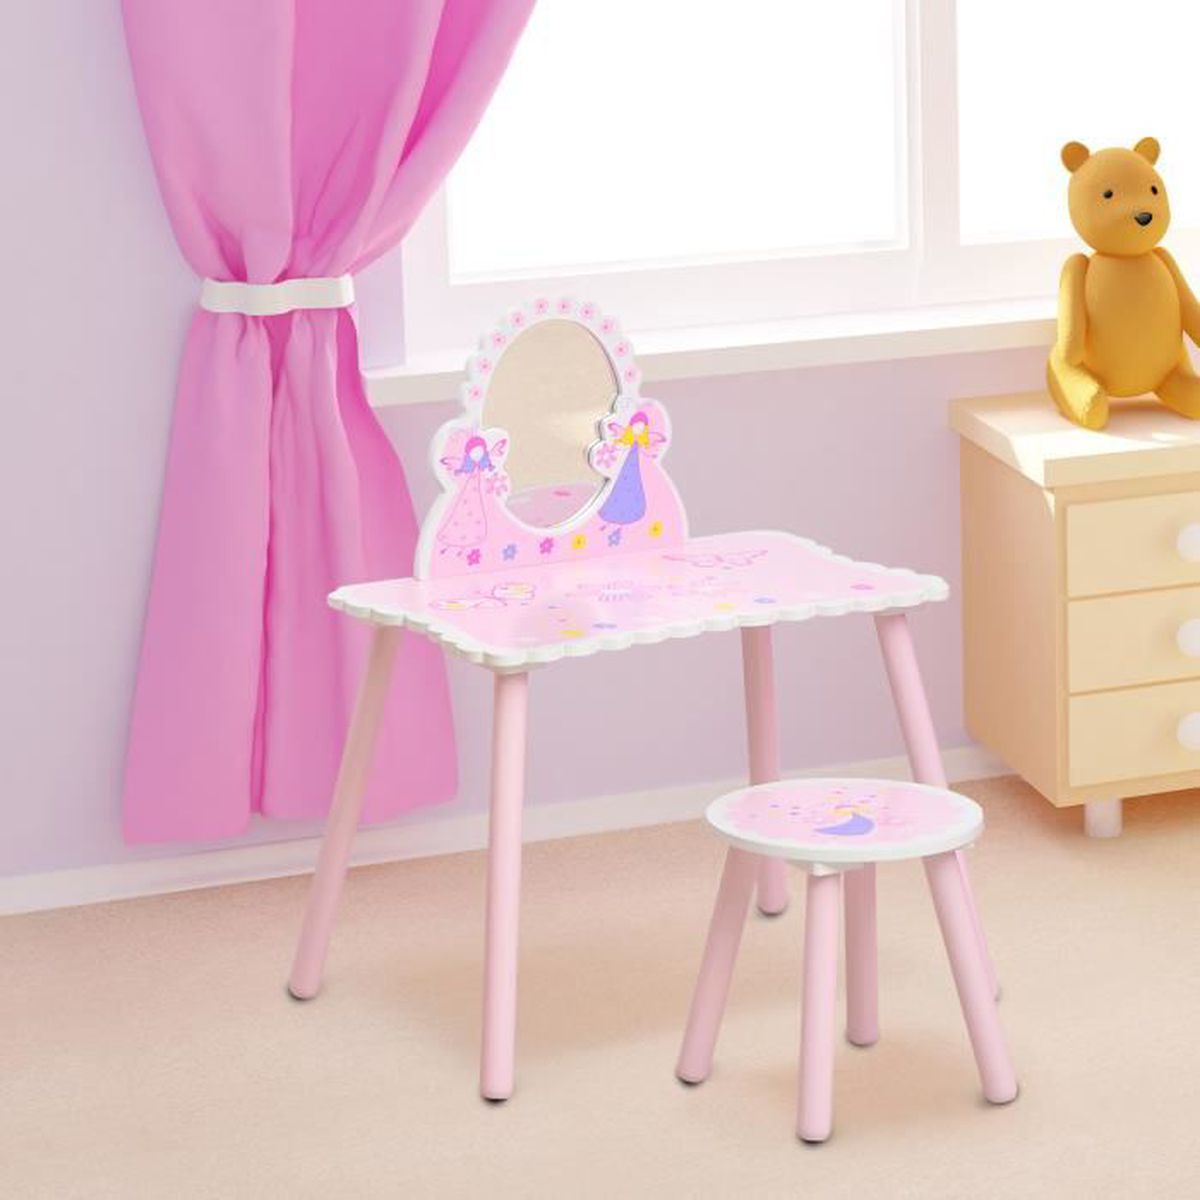 coiffeuse table de maquillage pour enfant avec miroir tabouret motif papillon rose neuf 03 rose. Black Bedroom Furniture Sets. Home Design Ideas